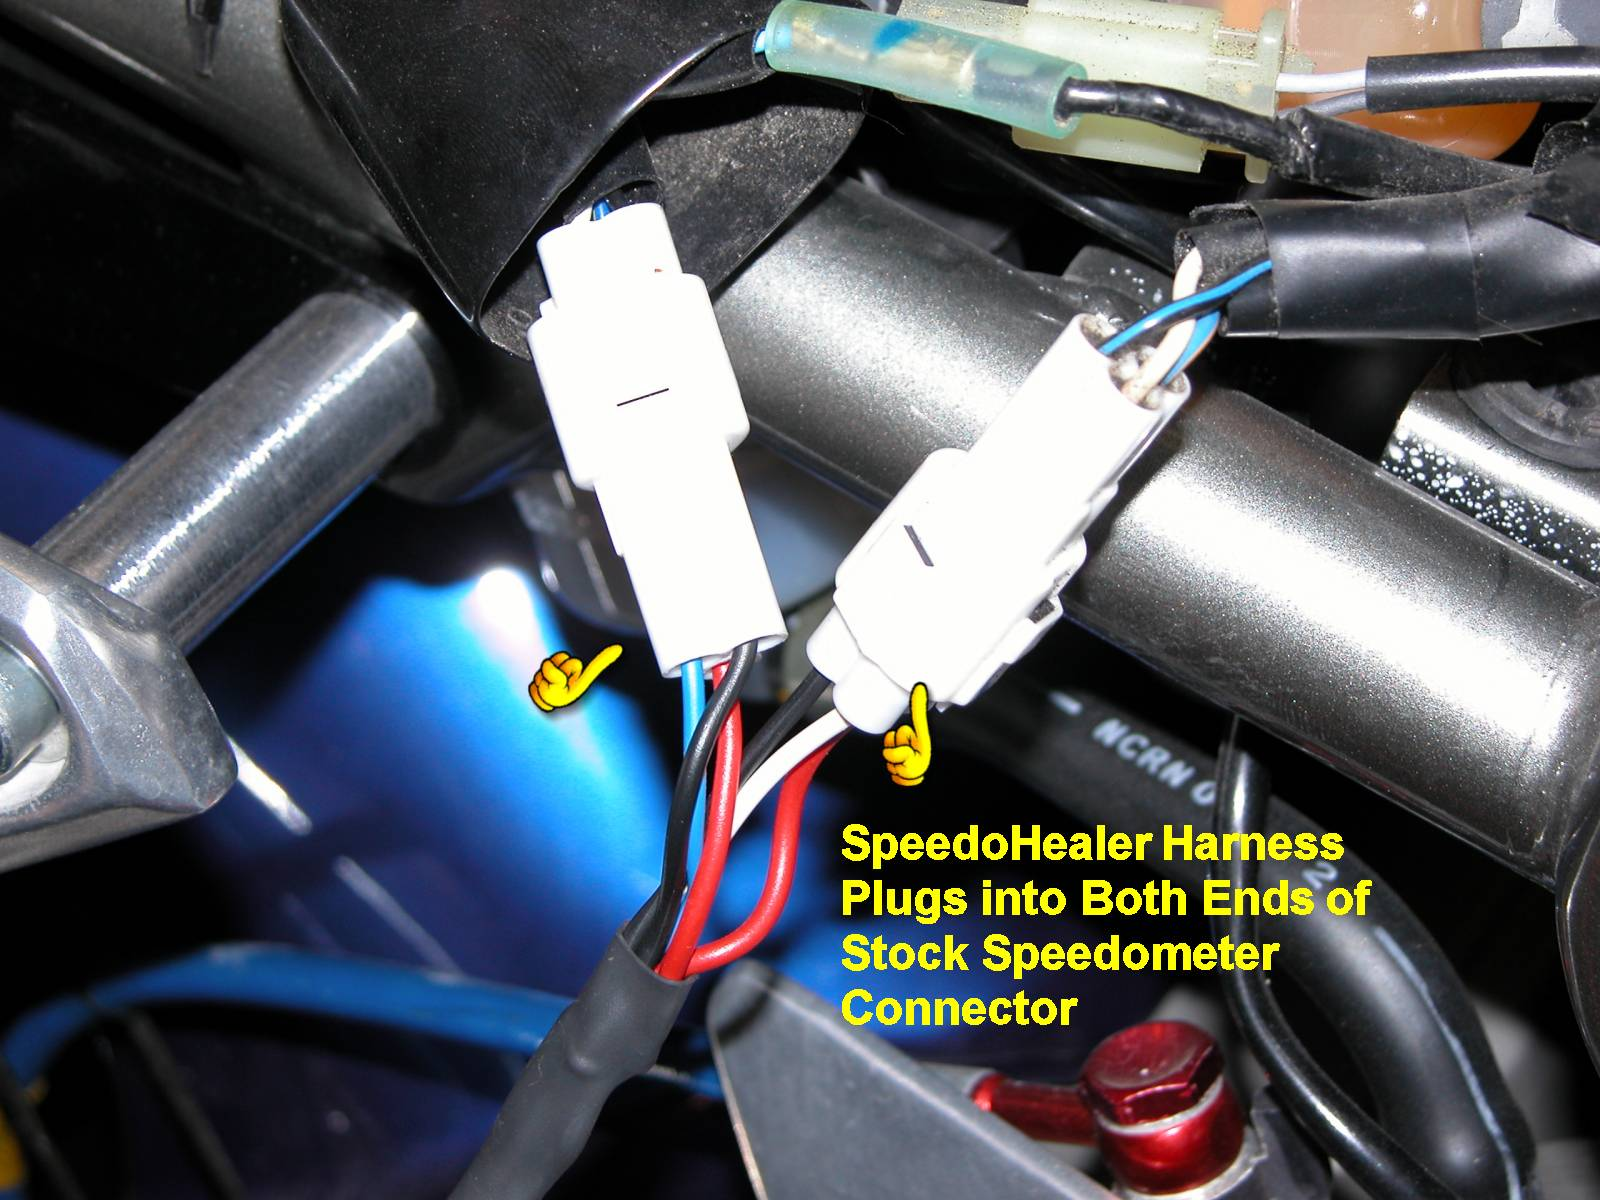 Installation Of Speedohealer Speedometer Recalibrator Yamaha Wire Harness Connectors You Can Lay The Anywhere On Top Bike Temporarily Plug In Other End Main As Well Long Remote Switch